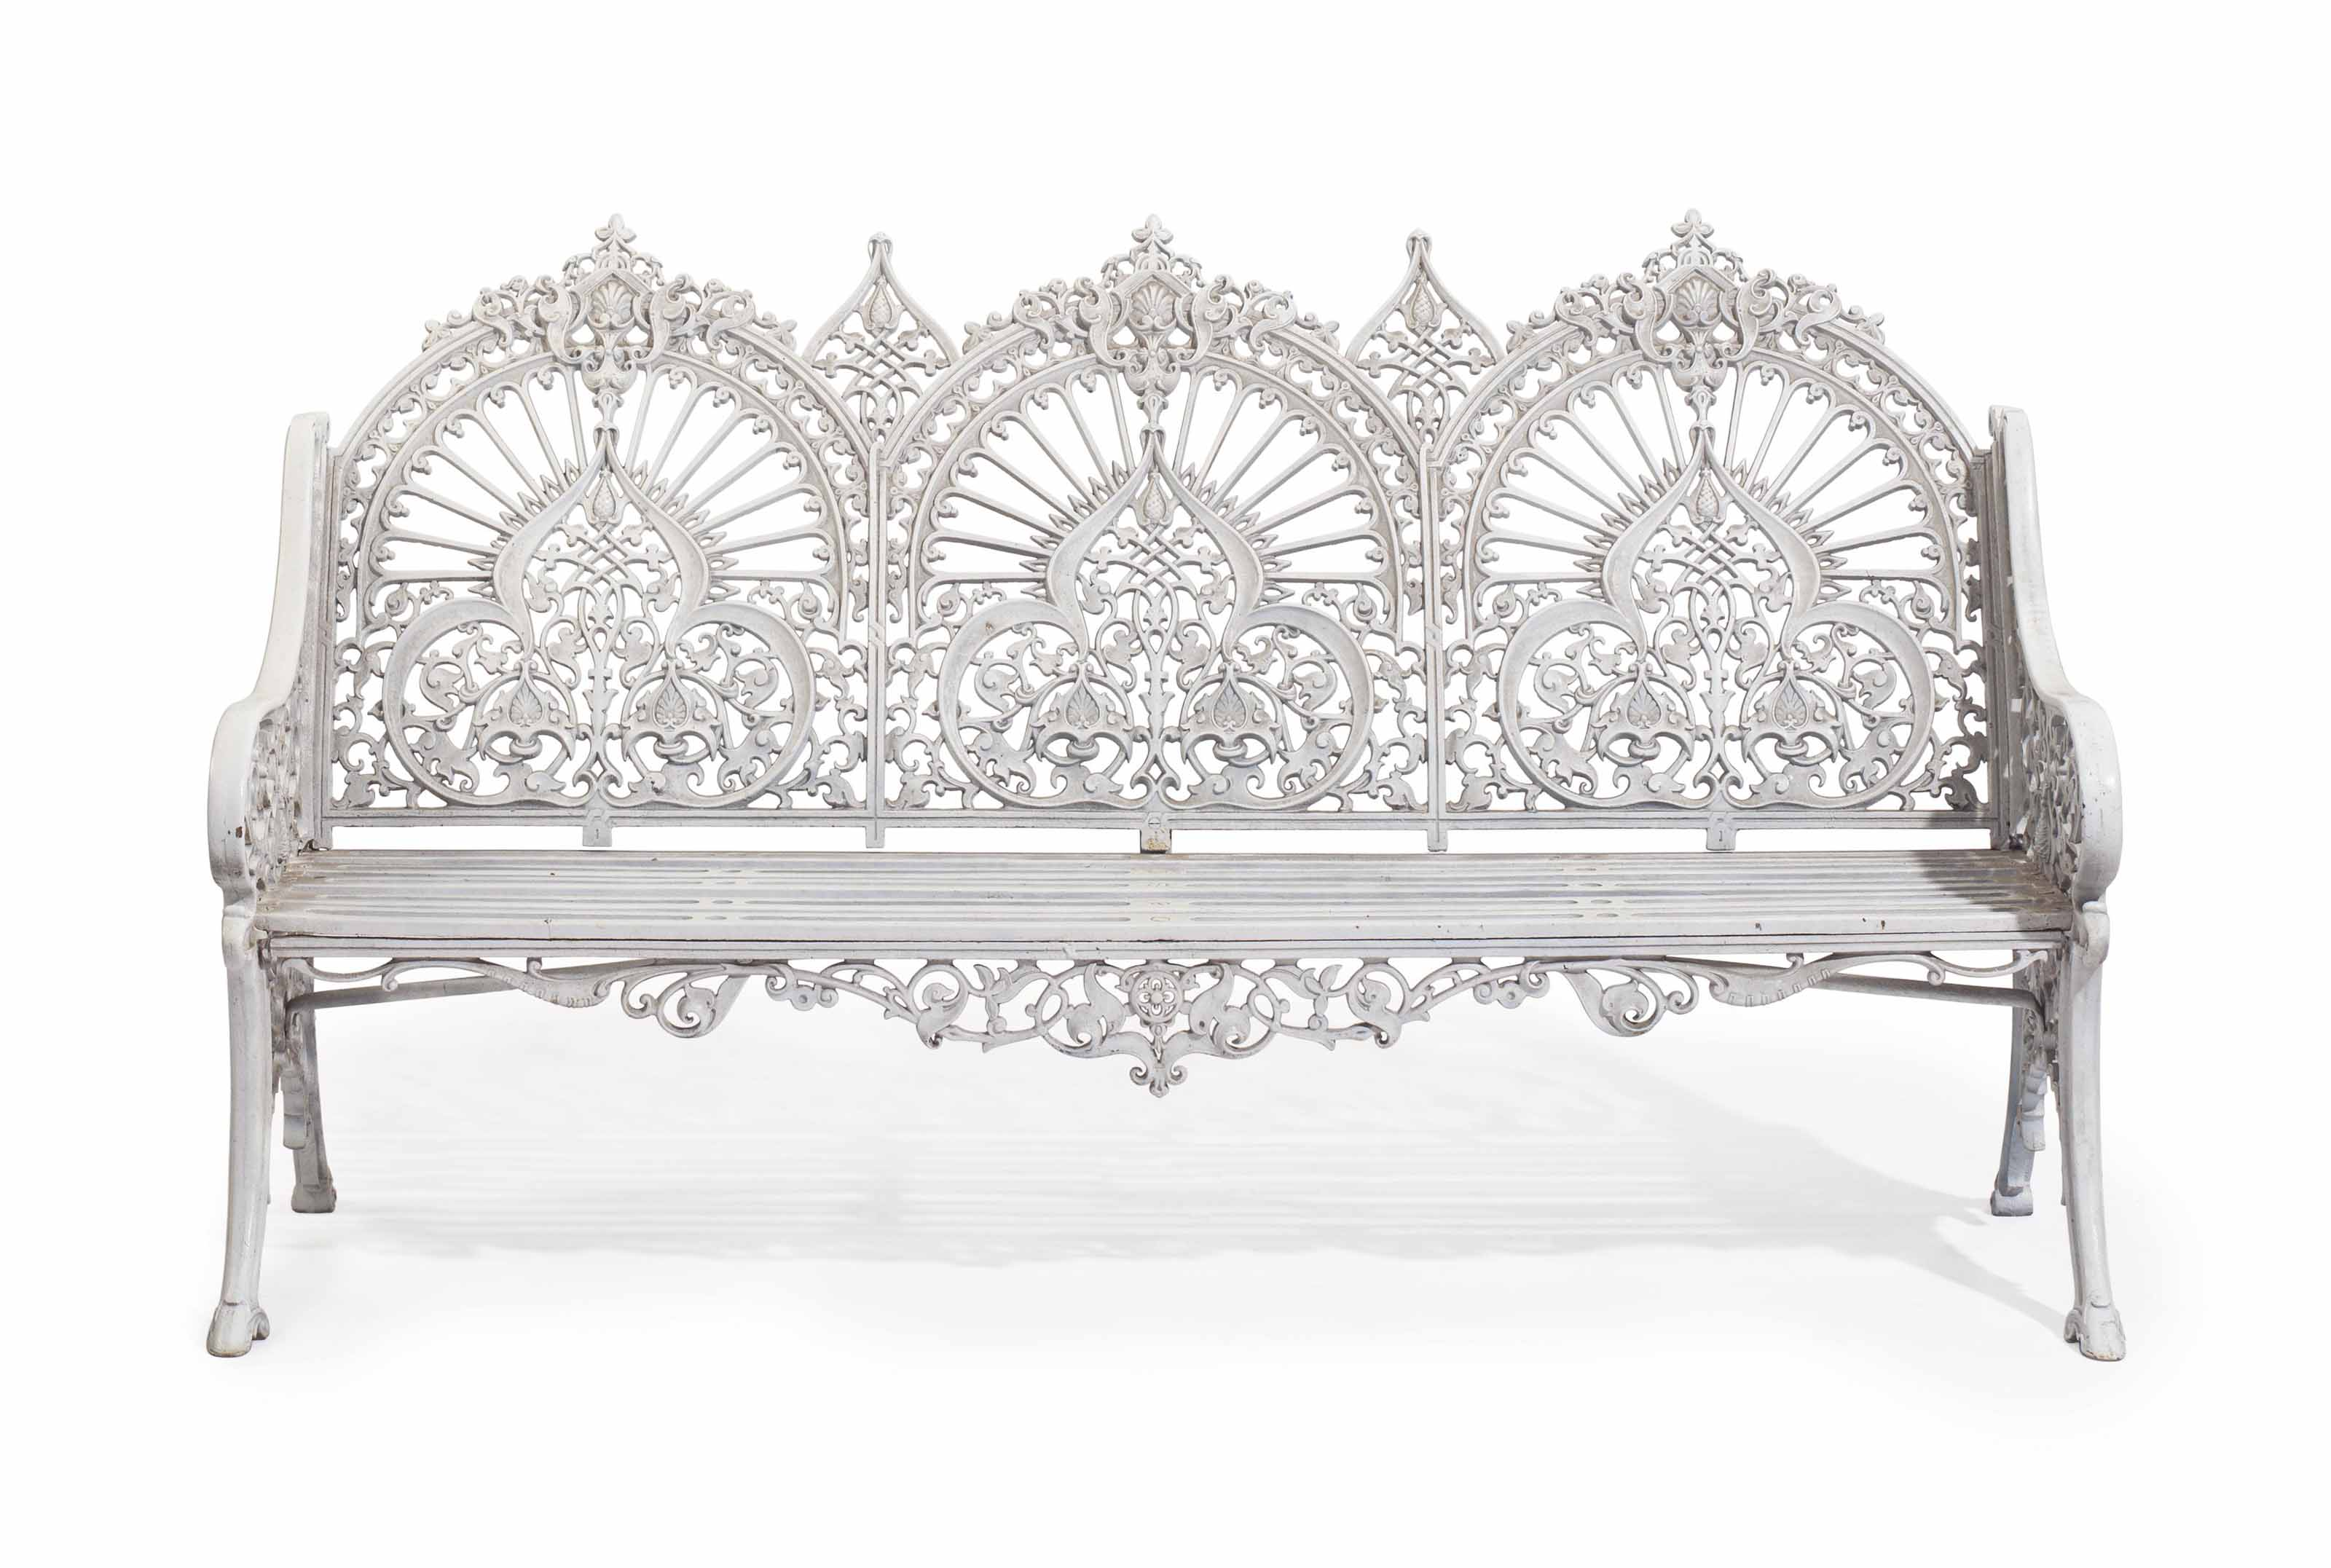 A VICTORIAN WHITE-PAINTED CAST-IRON GARDEN BENCH